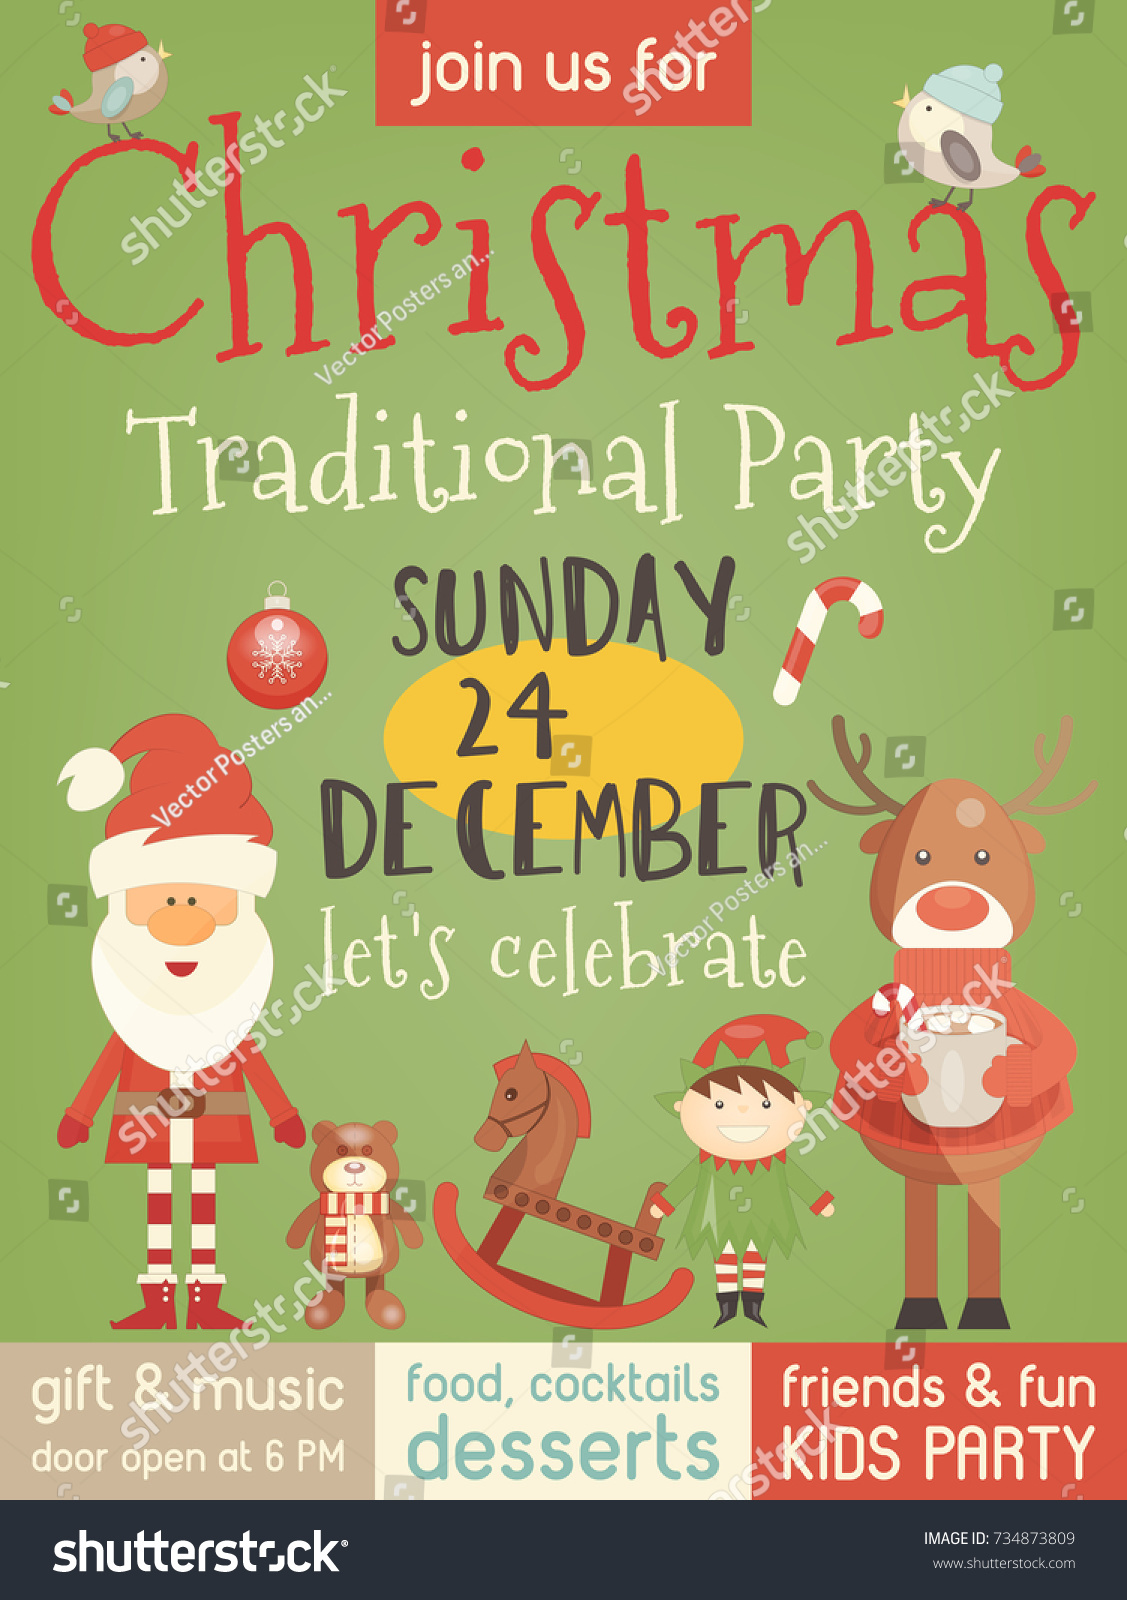 Christmas Party Invitation With Cute Santa Claus Xmas Deer And Characters For Family Celebration